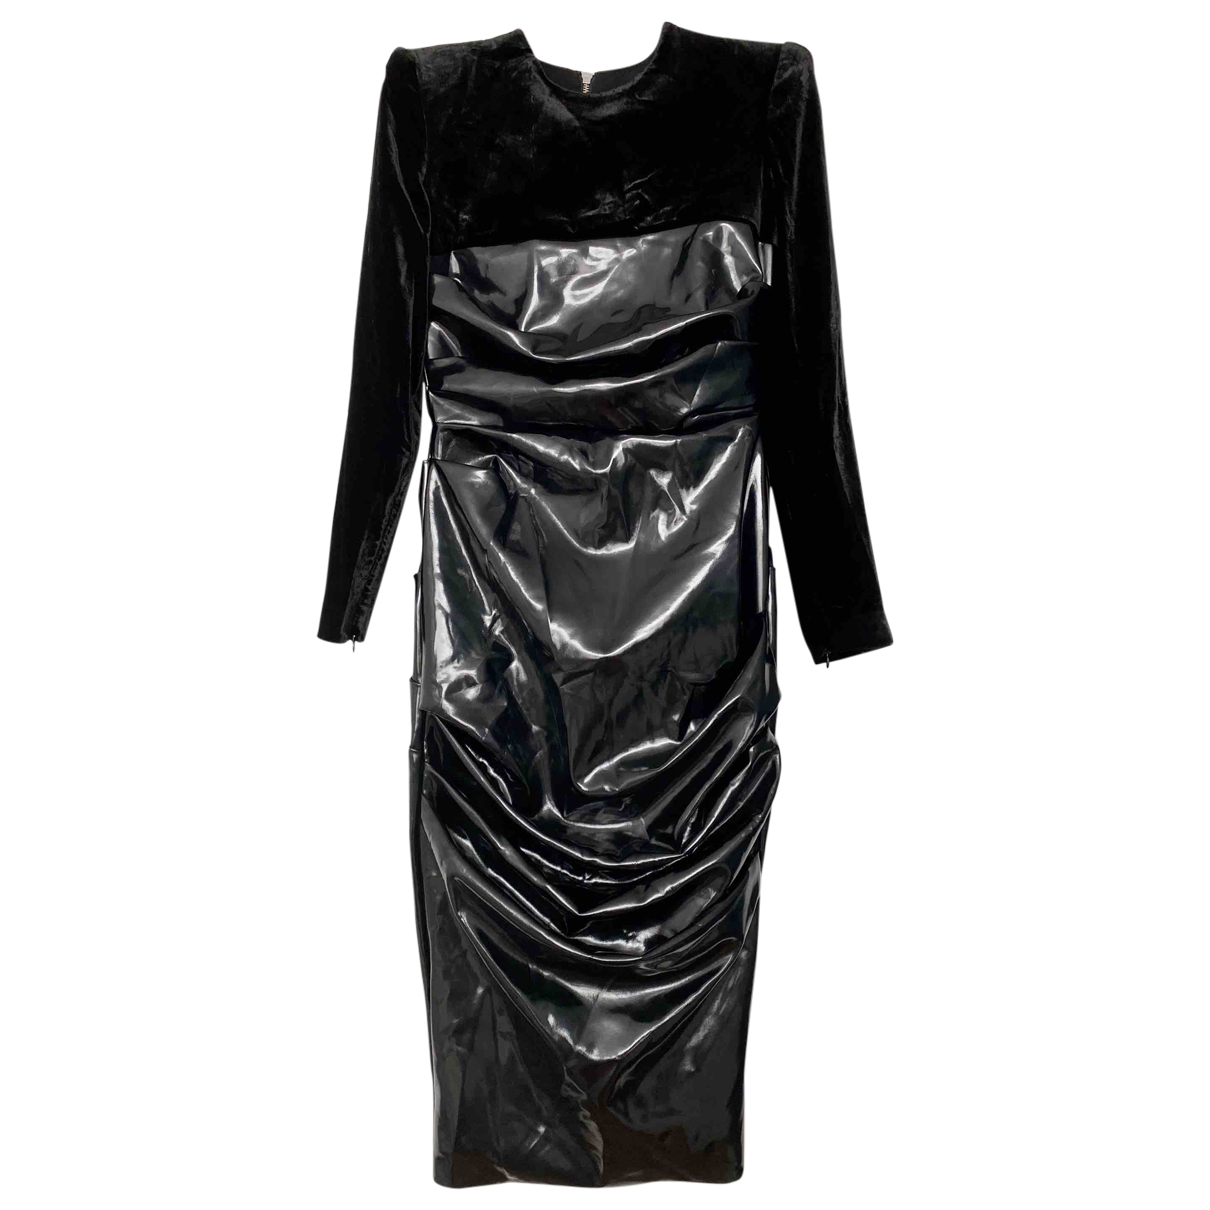 Alex Perry \N Black dress for Women 10 UK